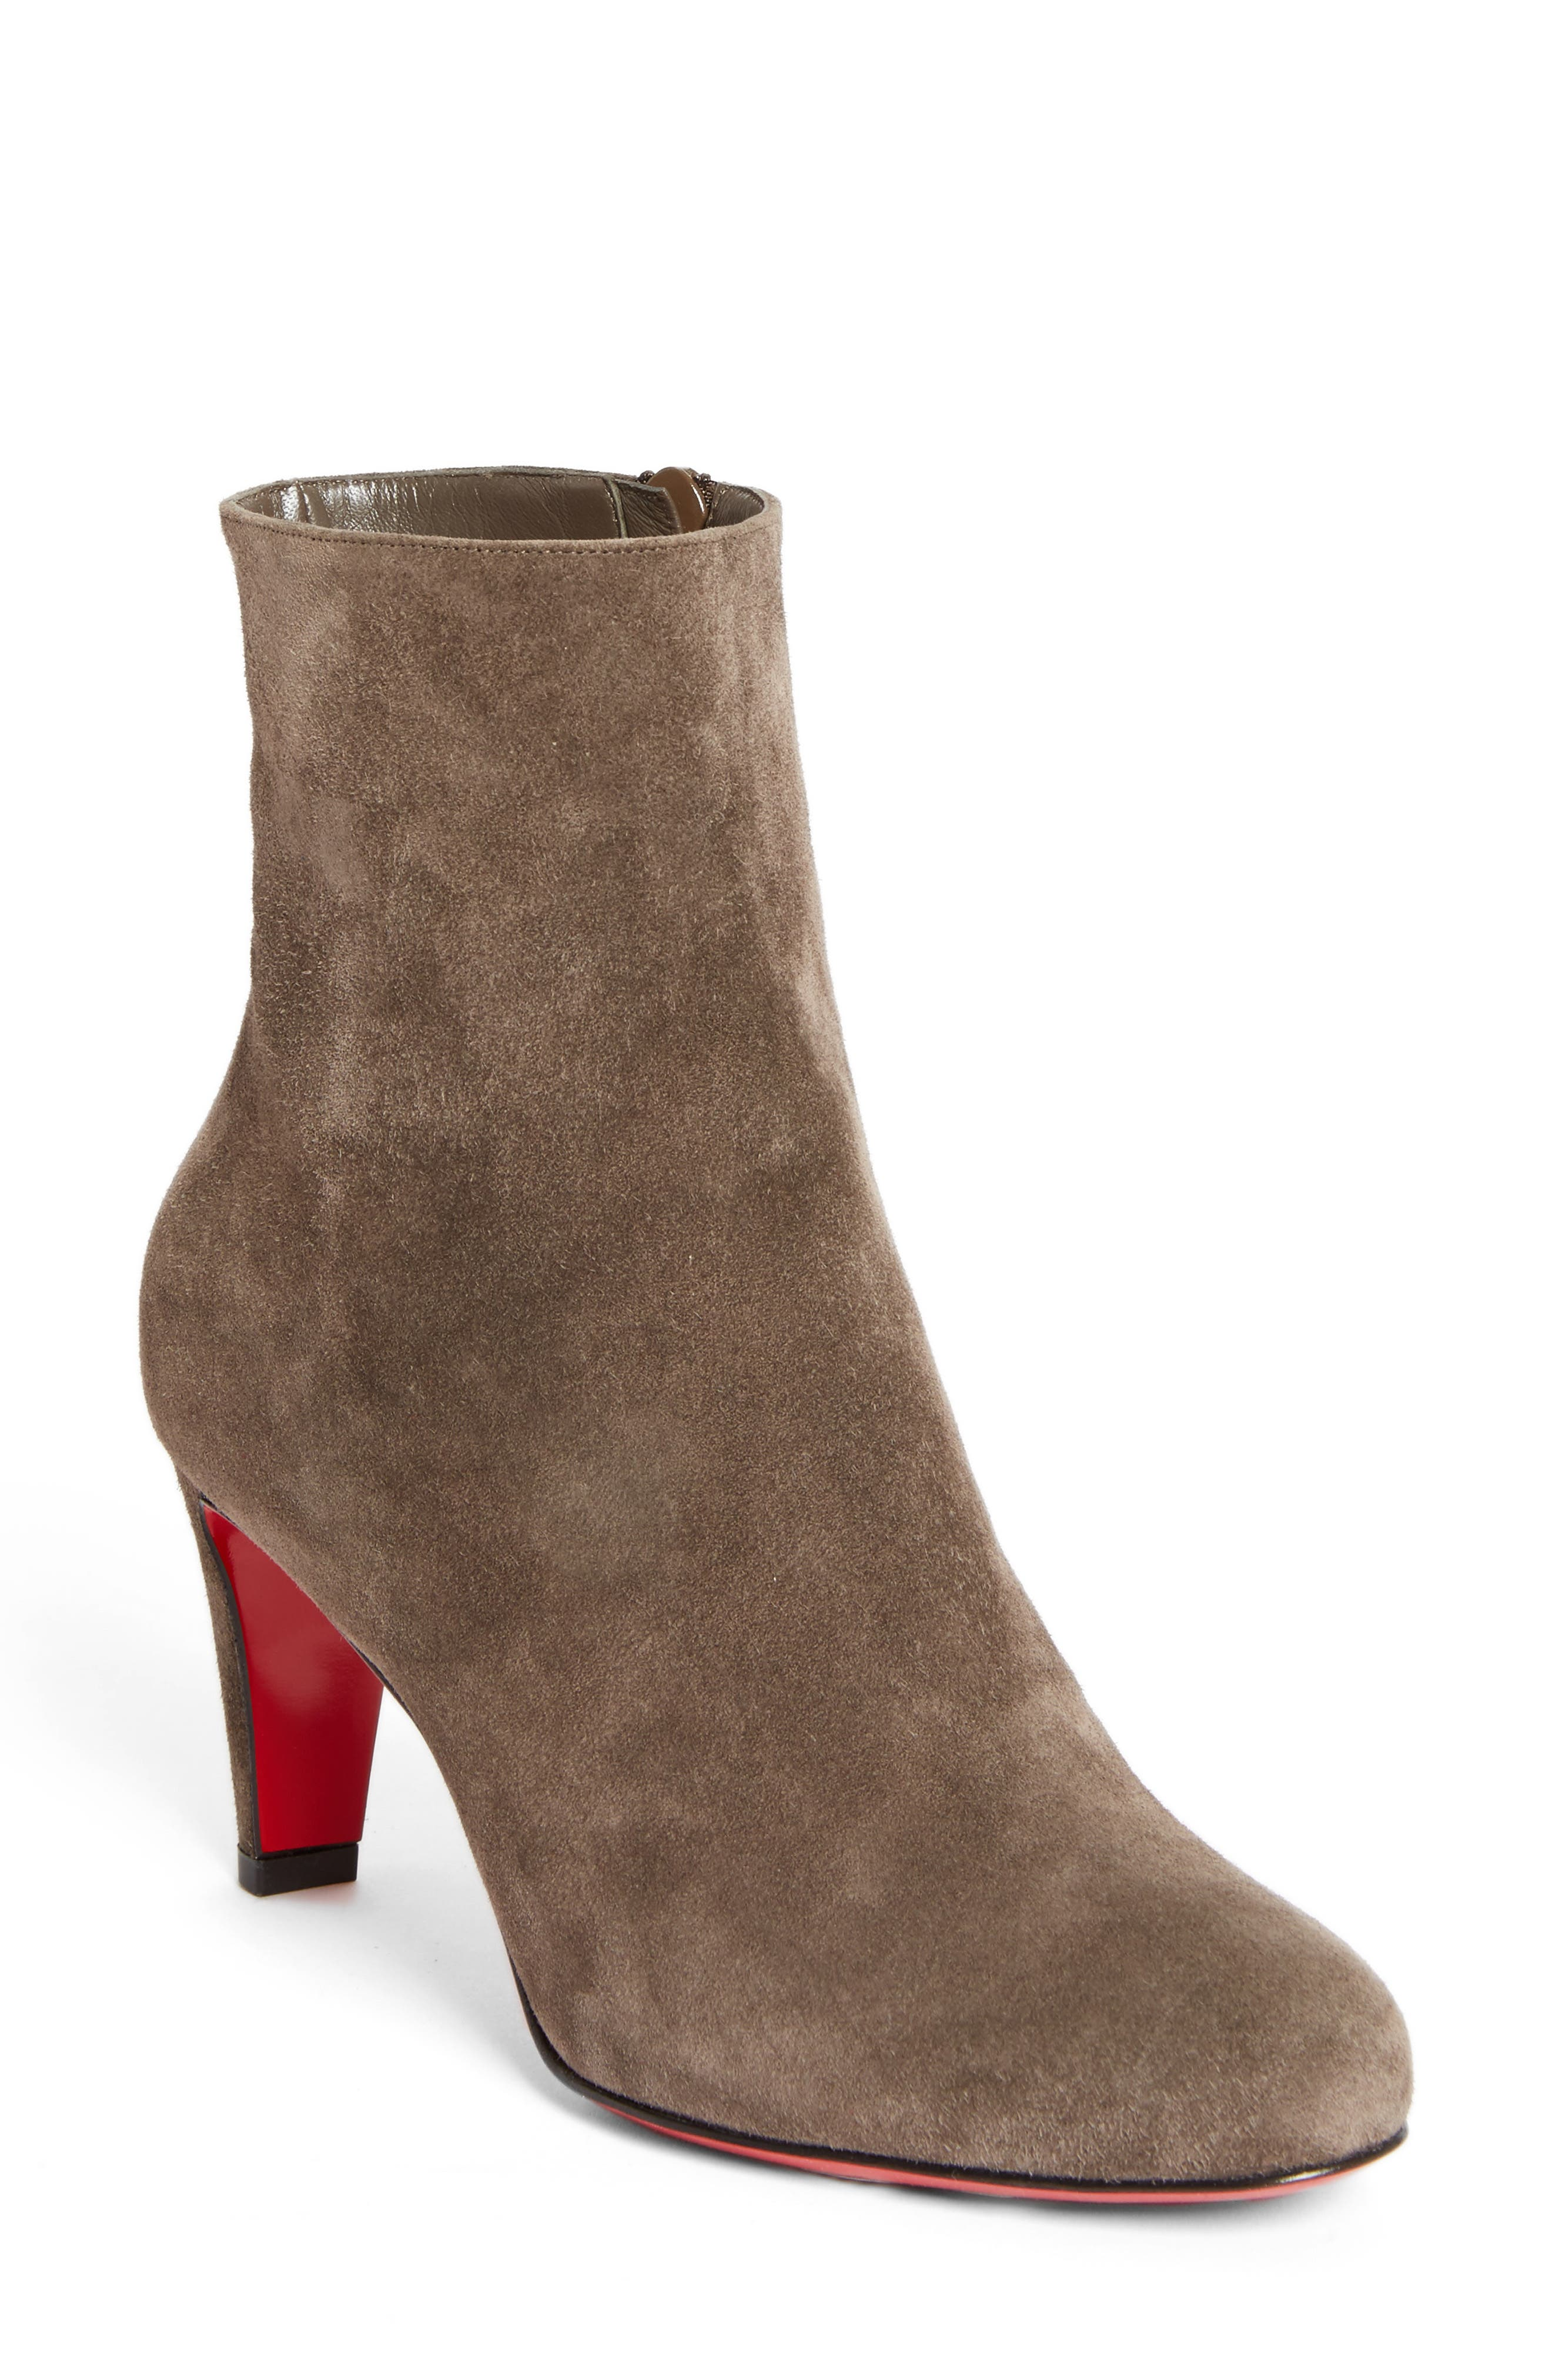 Christian Louboutin 'Top' Ankle Bootie